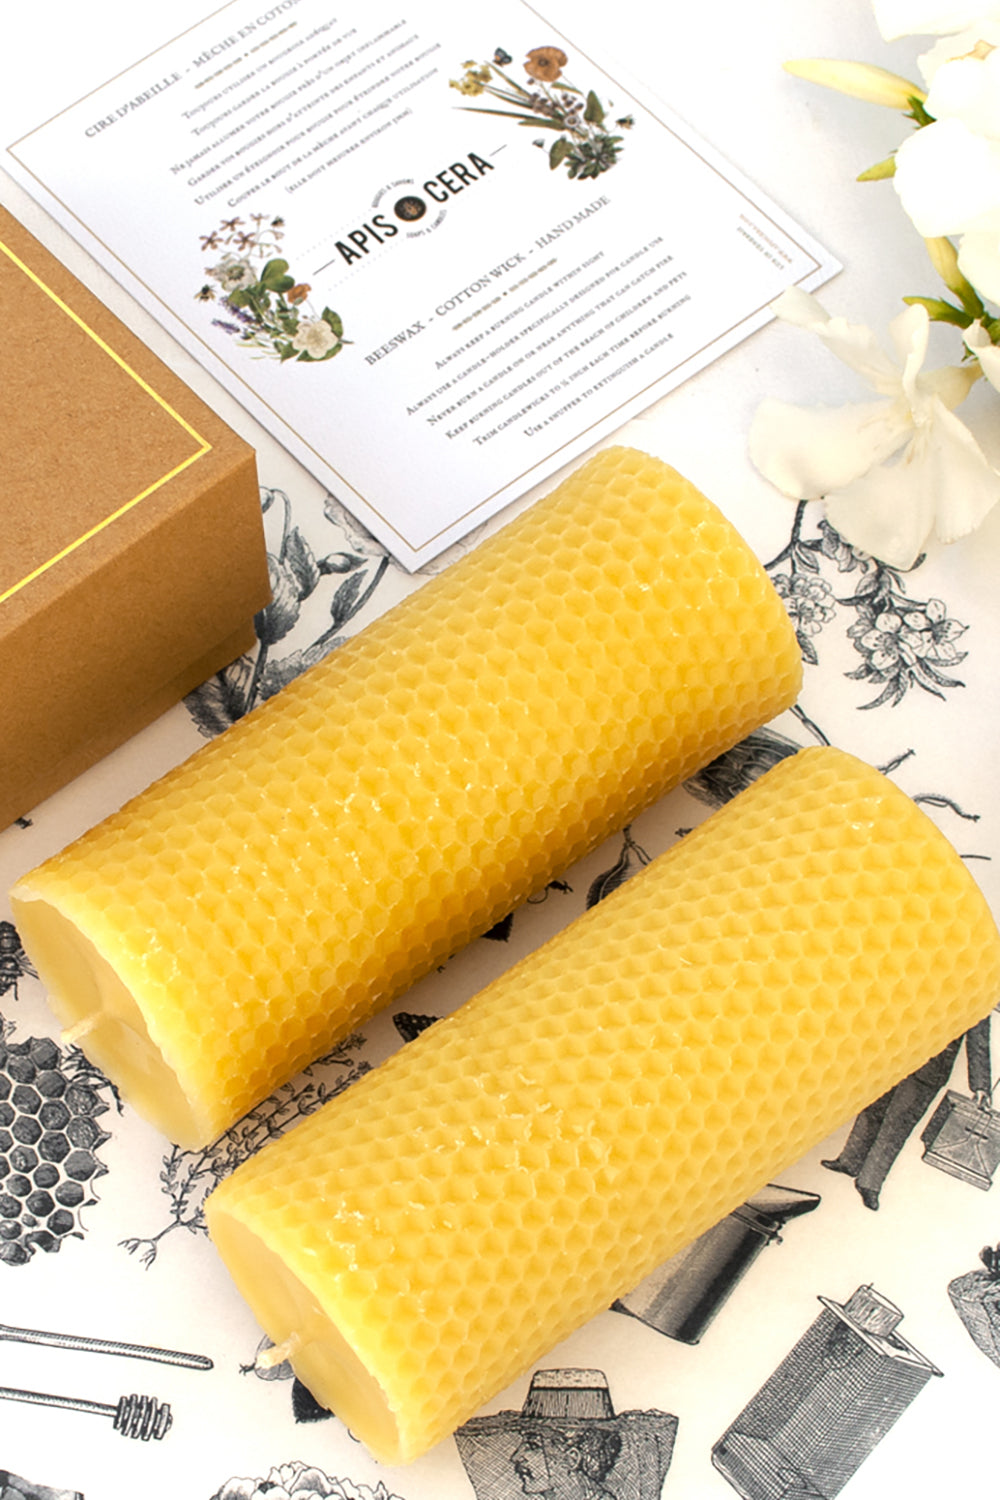 Bougies Ambroise - Box of 2 Beeswax Pillar Candles